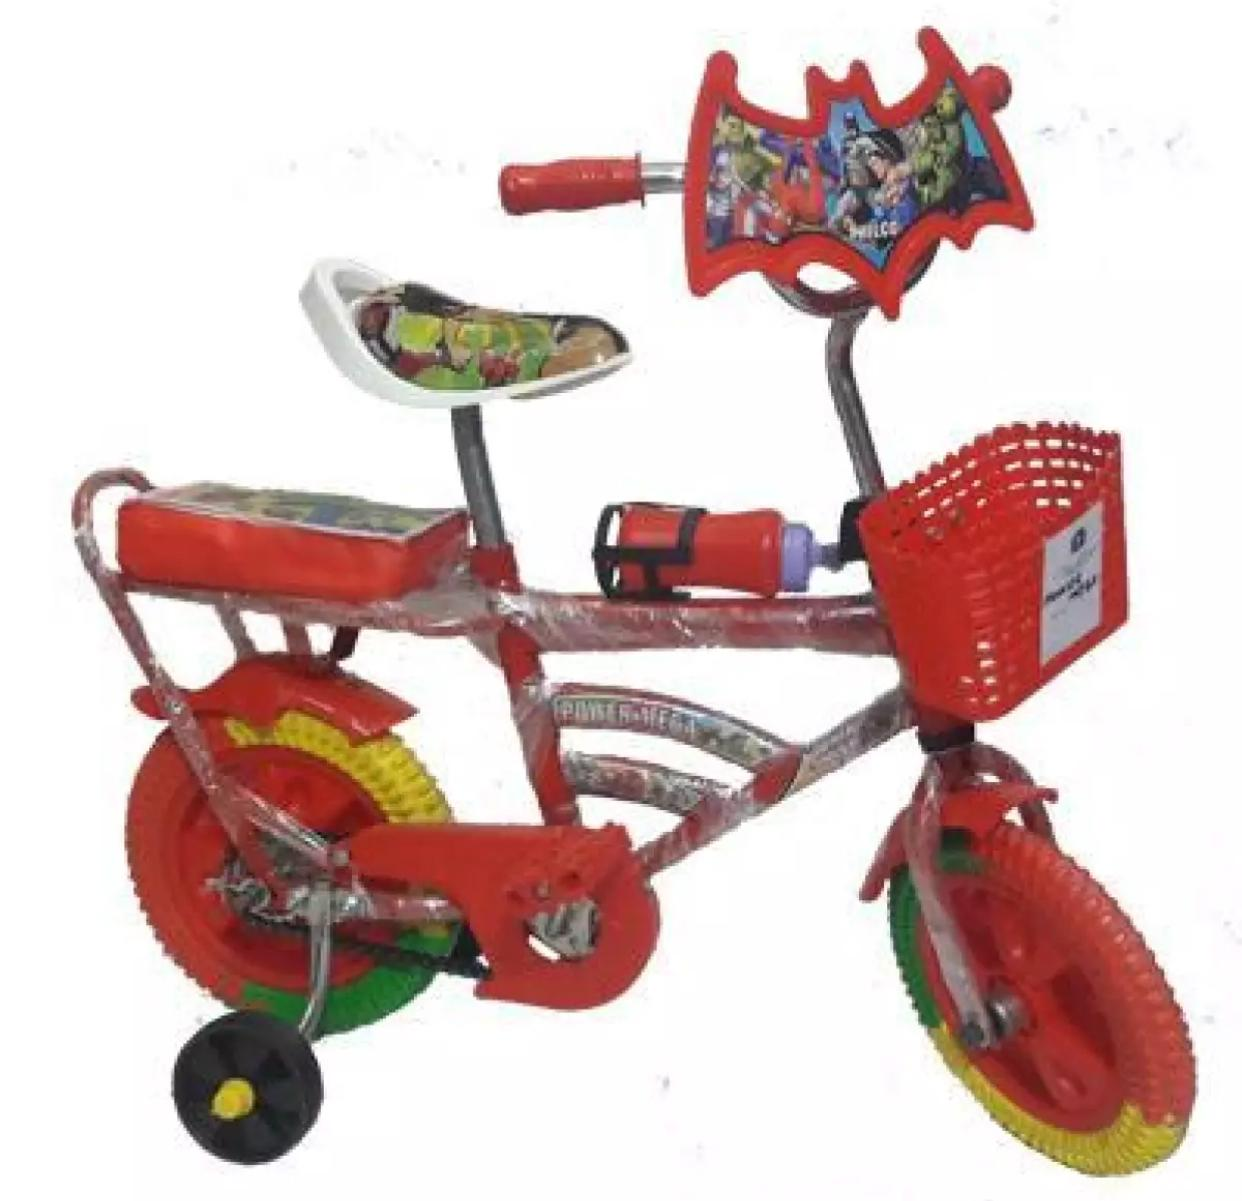 Mega Two wheeler Cycle For Kids Red and Green Color